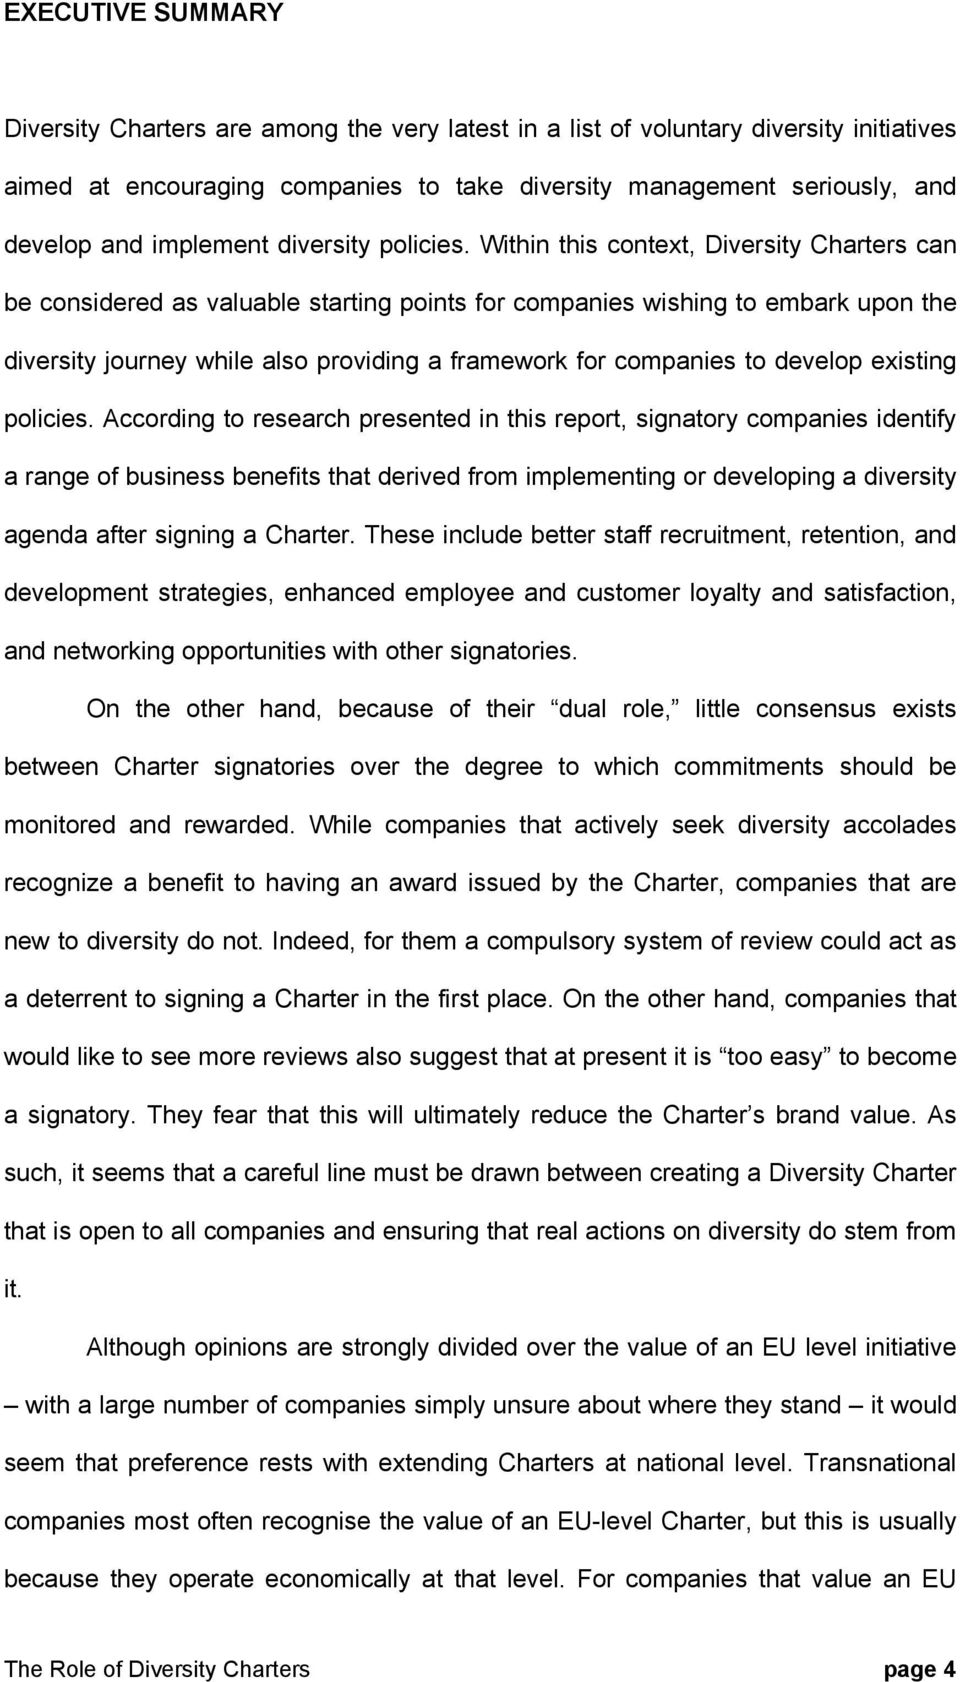 Within this context, Diversity Charters can be considered as valuable starting points for companies wishing to embark upon the diversity journey while also providing a framework for companies to